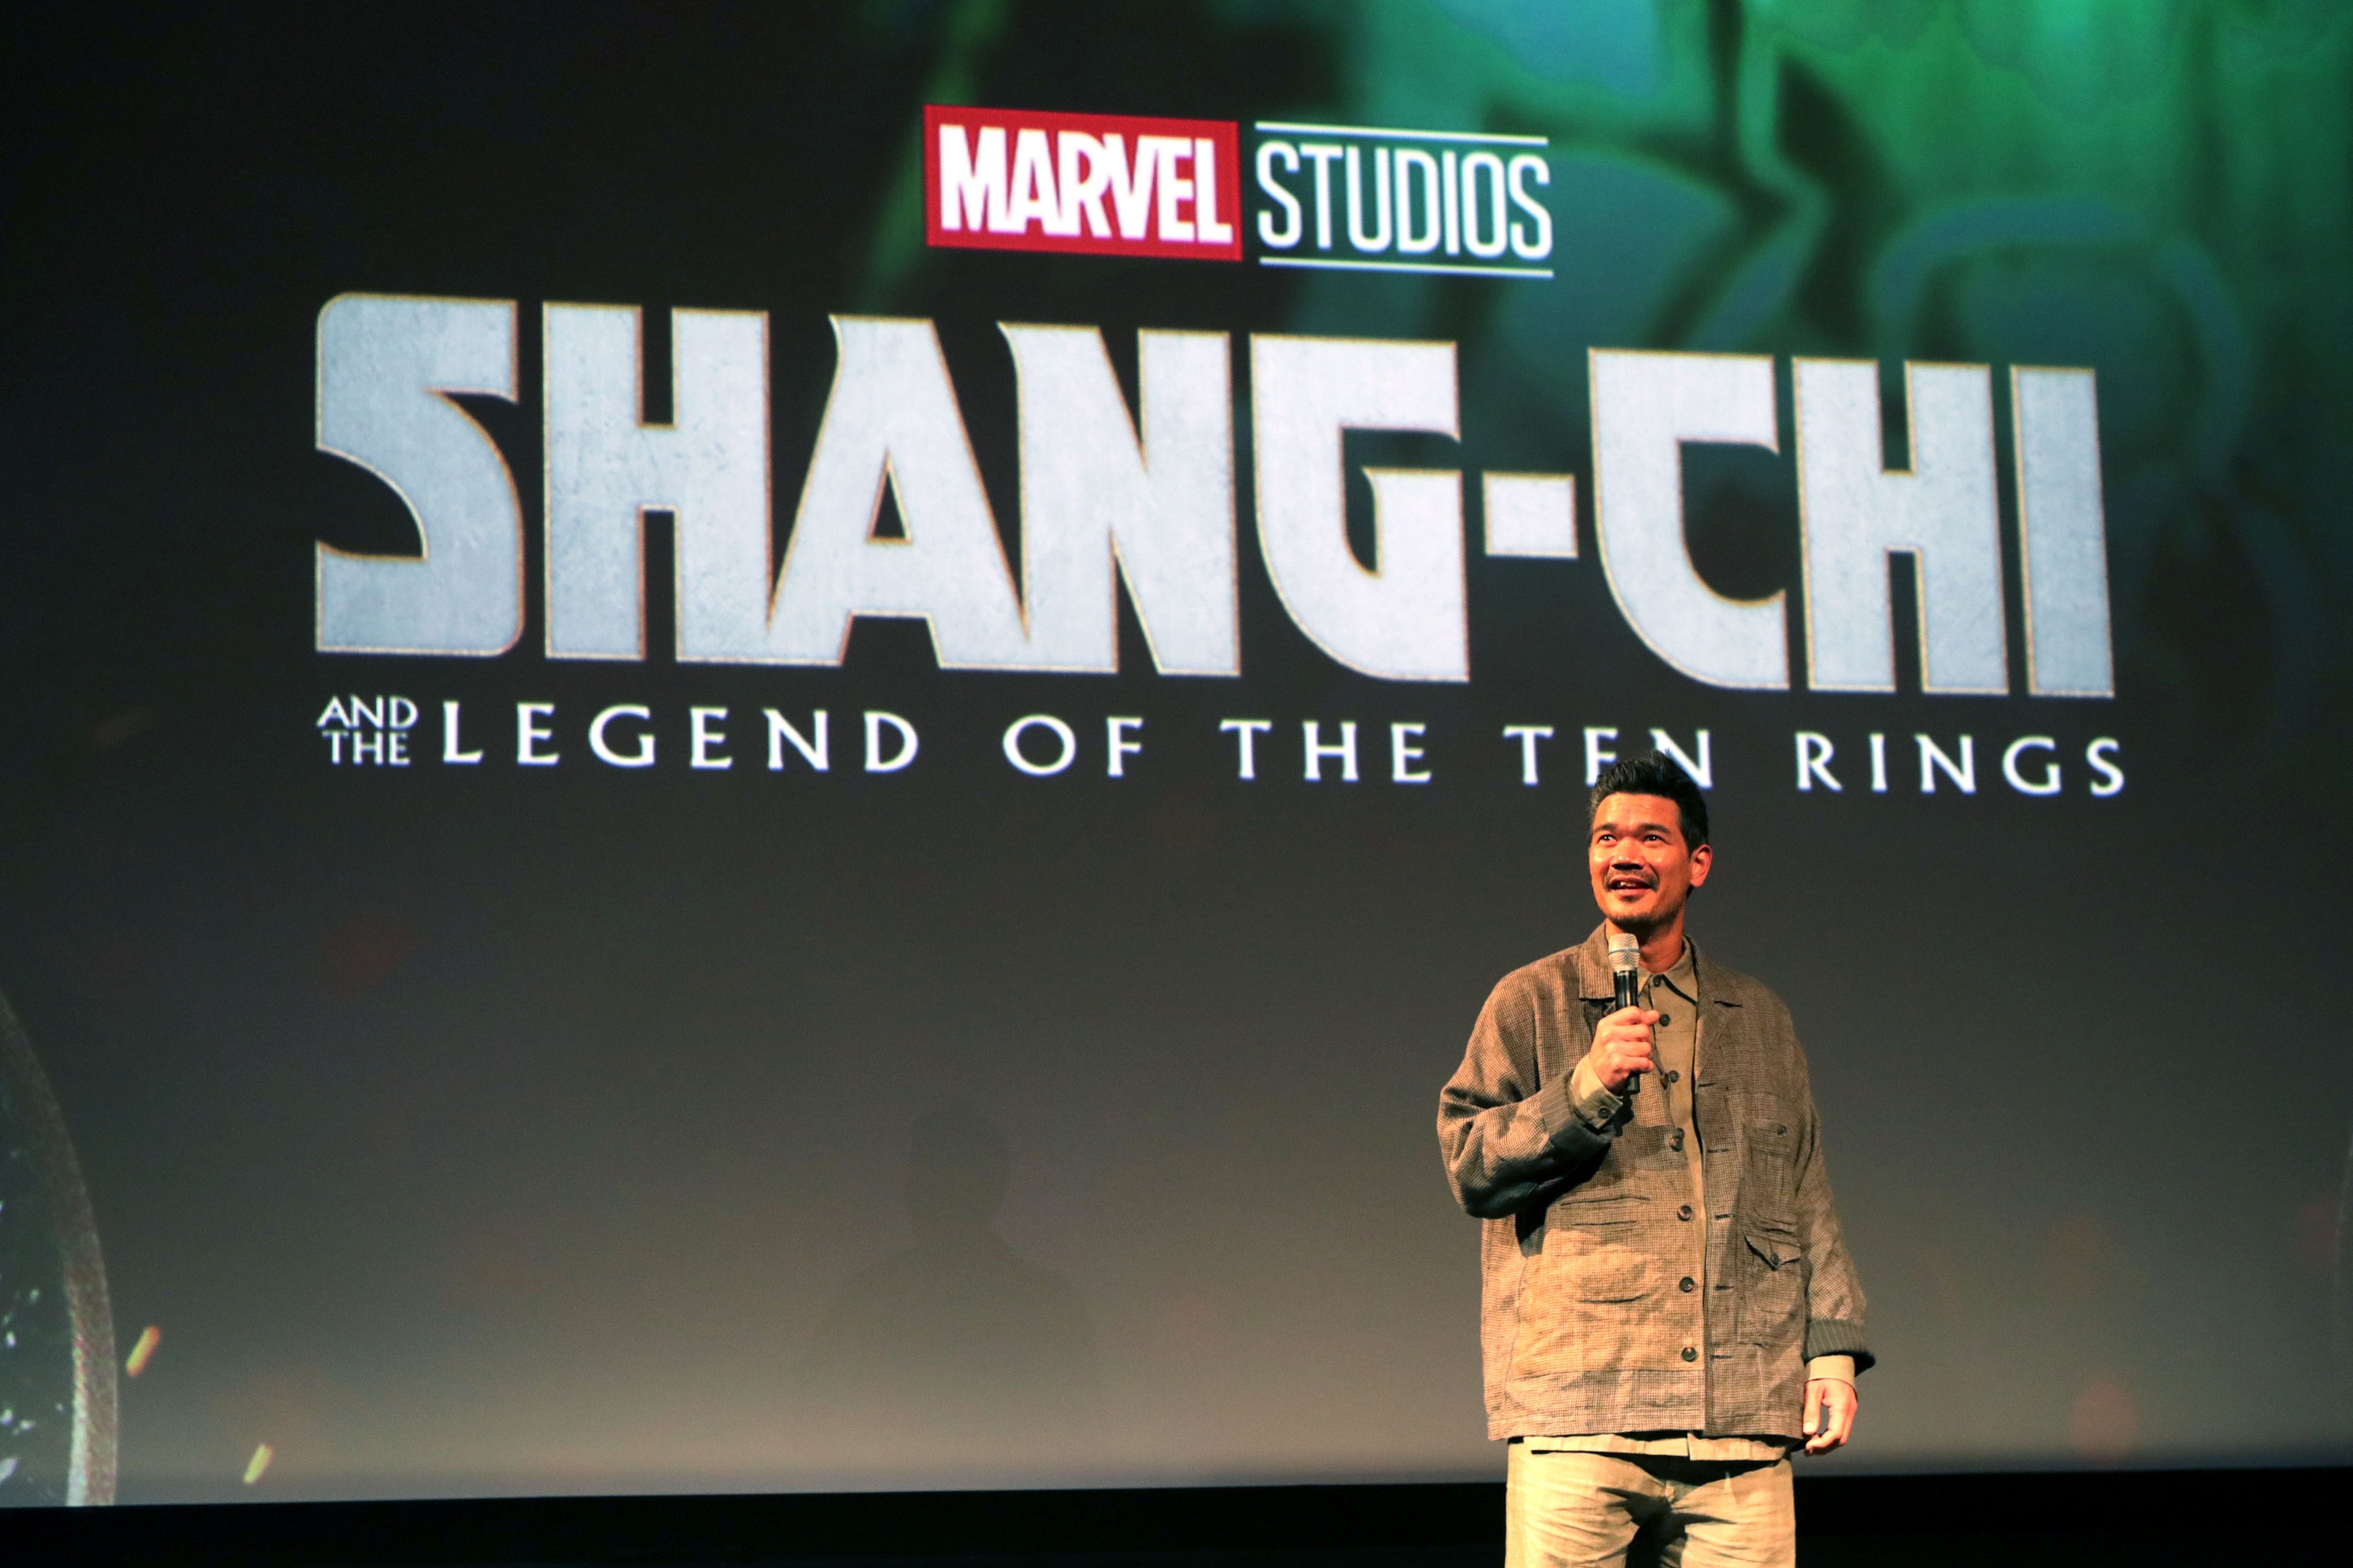 Director Destin Daniel Cretton surprises an audience at Hollywood's El Capitan Theatre at a screening of Marvel Studios' Shang-Chi and the Legend of the Ten Rings